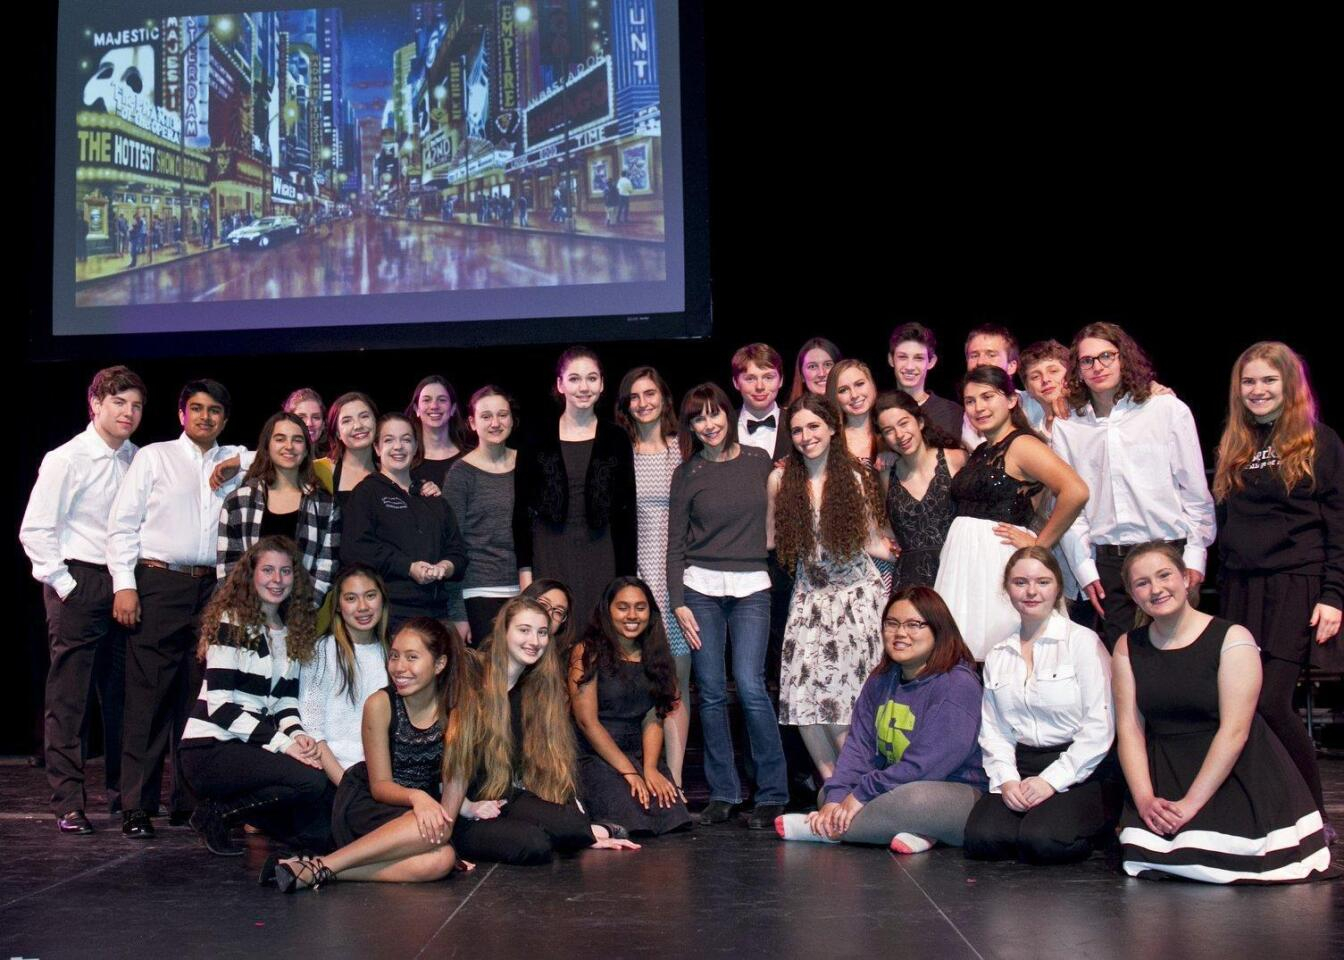 Guest artist Susan Egan (standing center front) with student performers